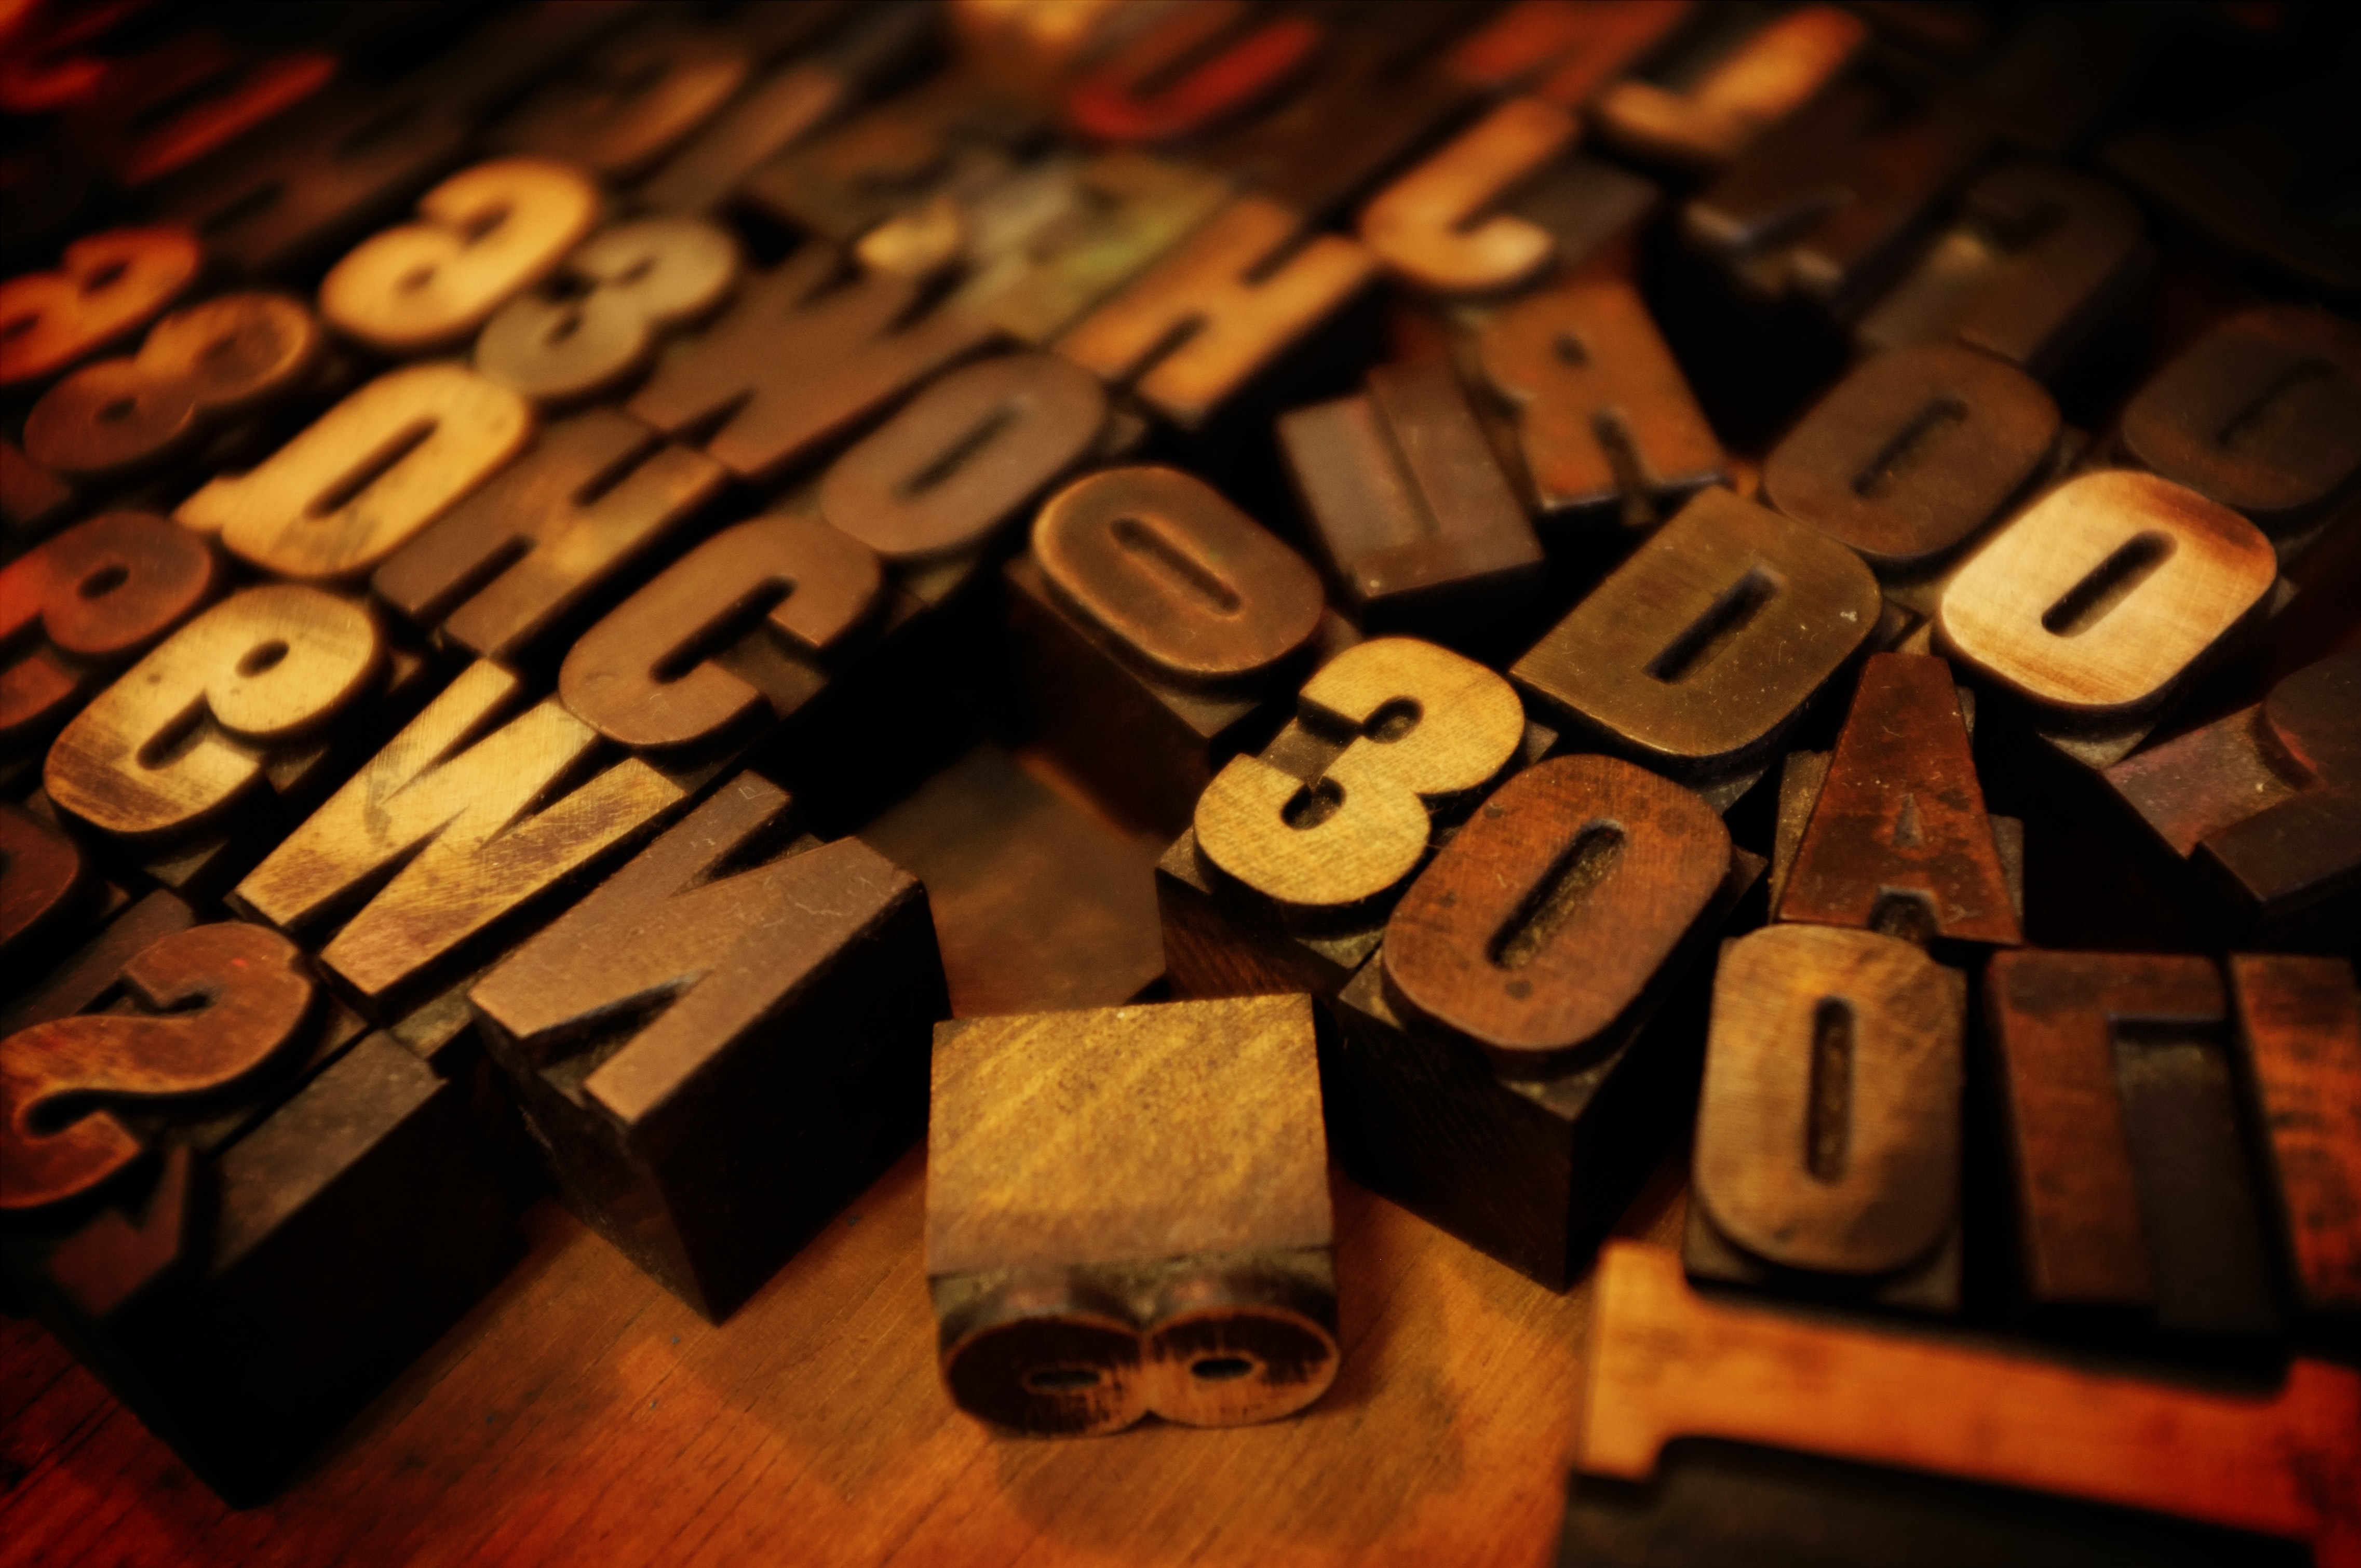 tilt shift lens photography close shot of brown letter and number blocks